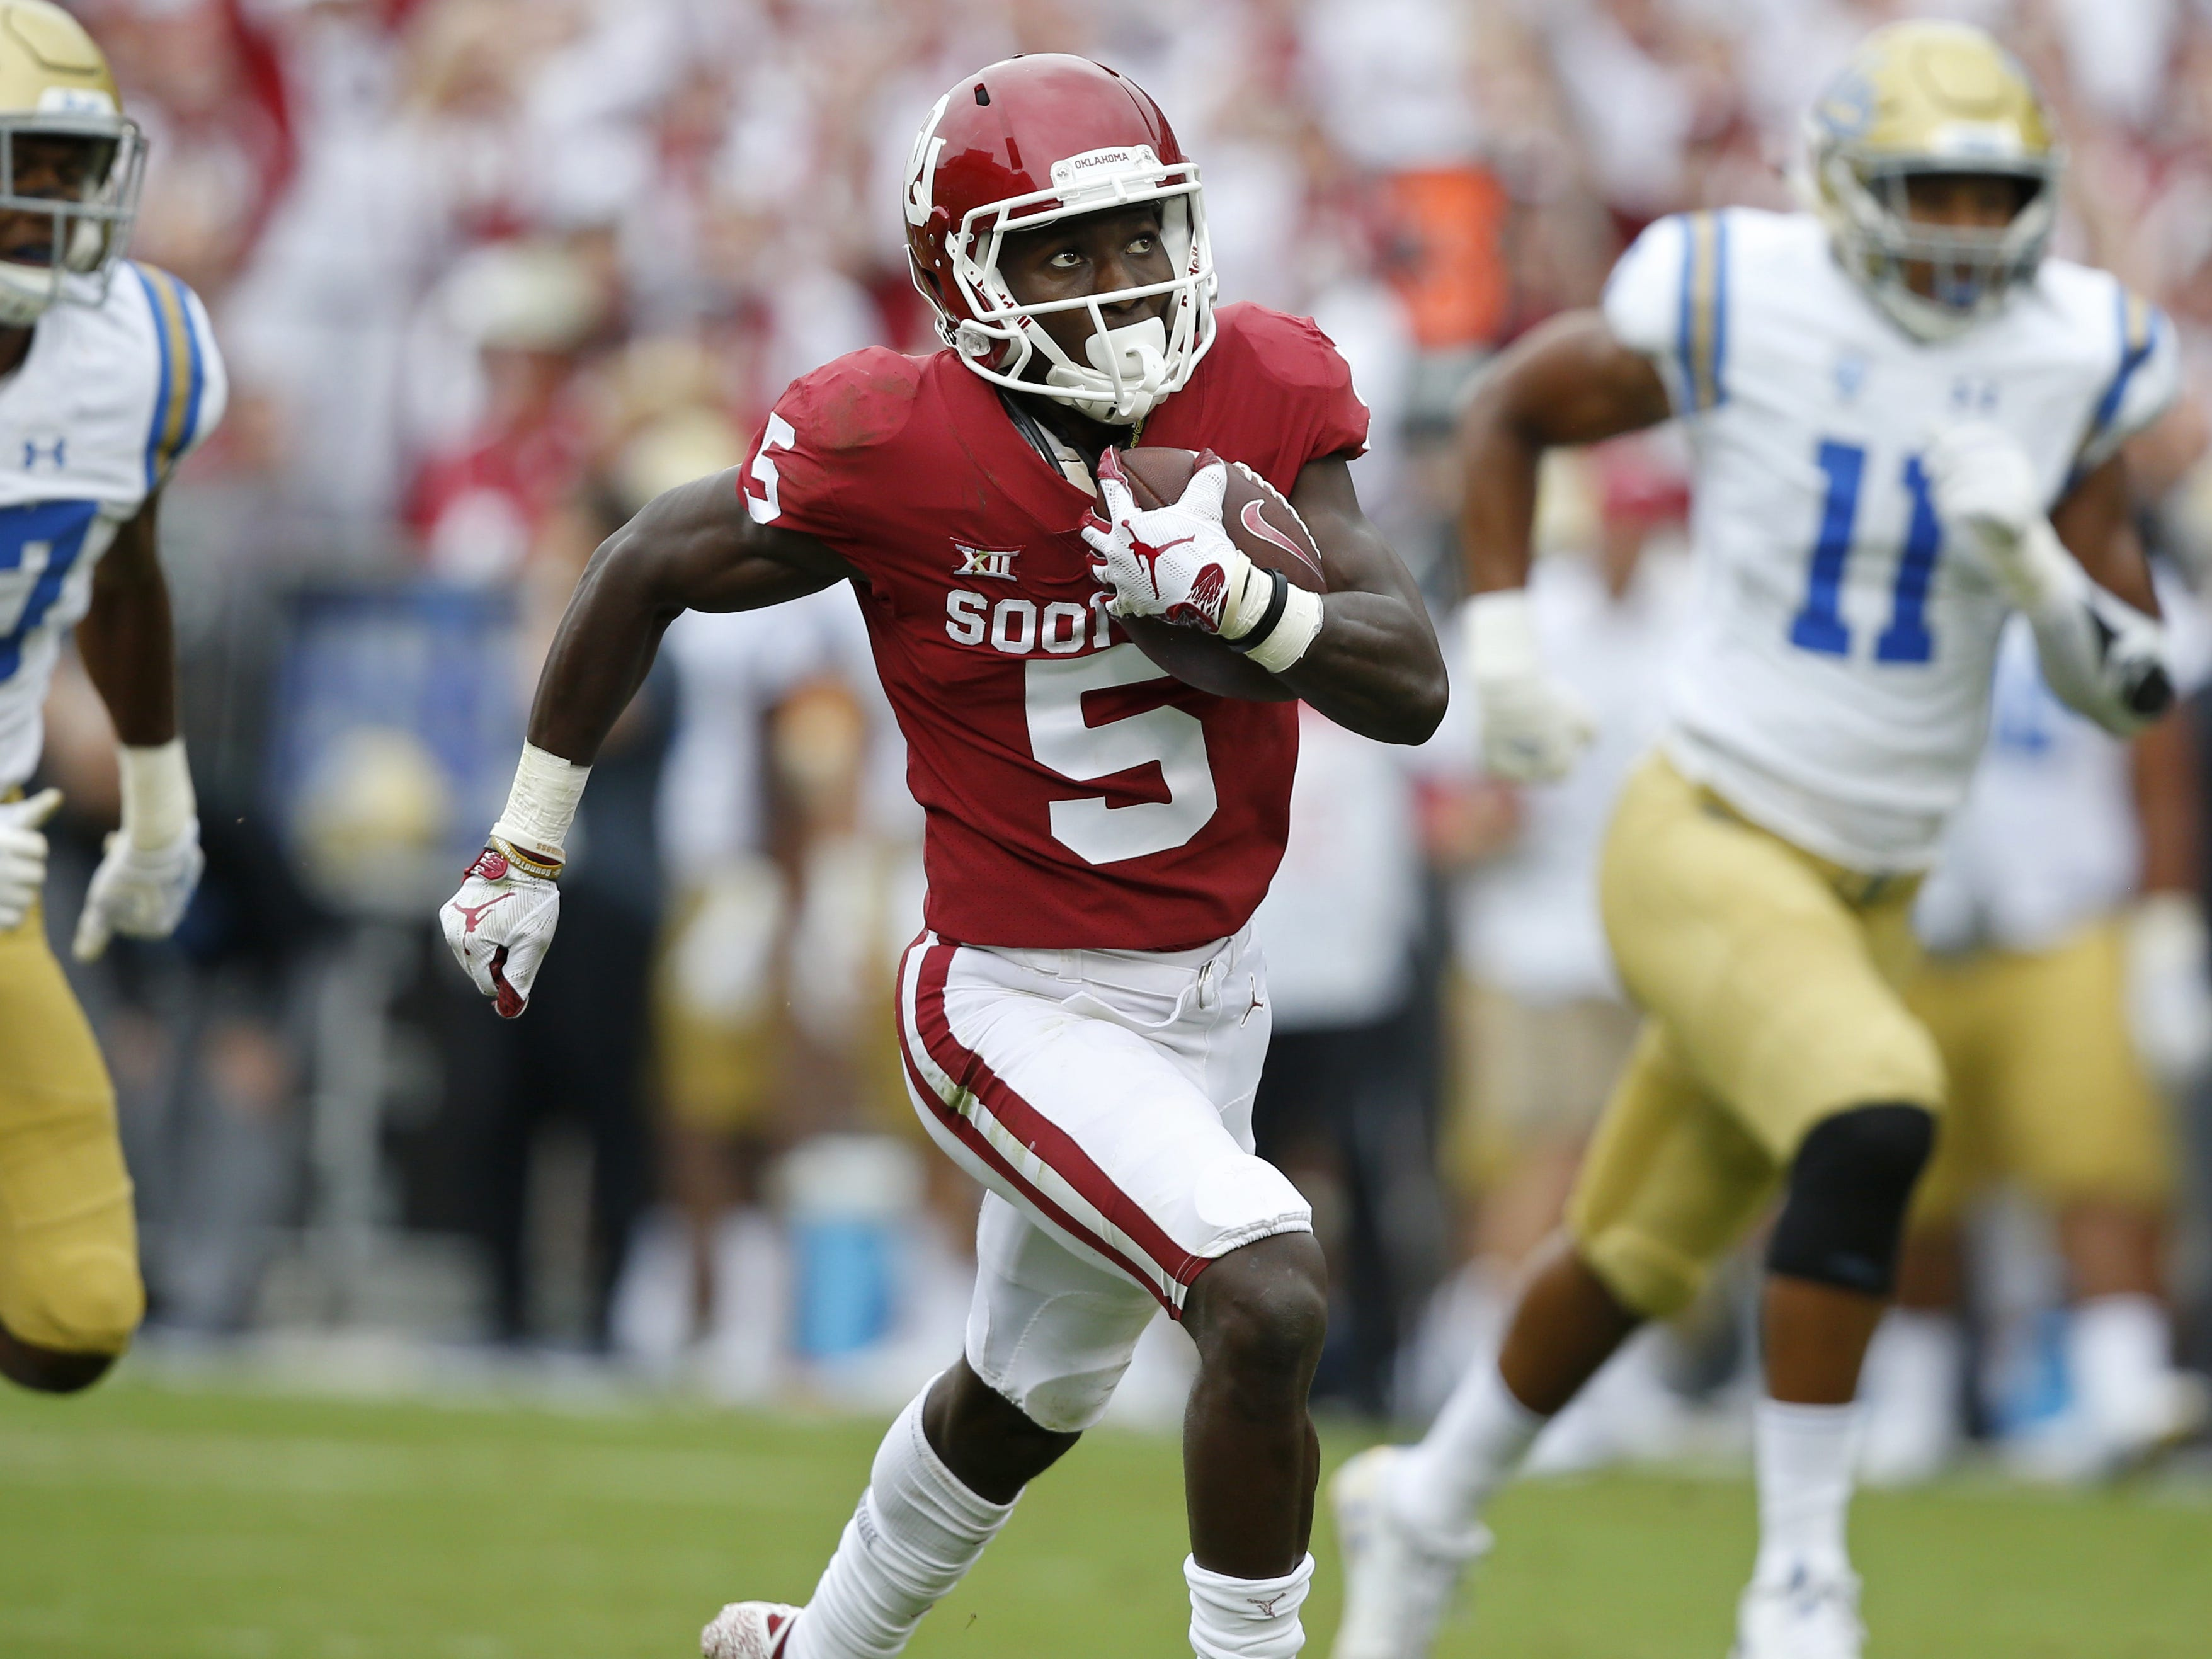 WR Marquise Brown, Oklahoma: The Lions aren't trading for Antonio Brown, but they might have a chance to draft his cousin, Marquise, in Round 2 after he had 75 catches for 1,318 yards this season.